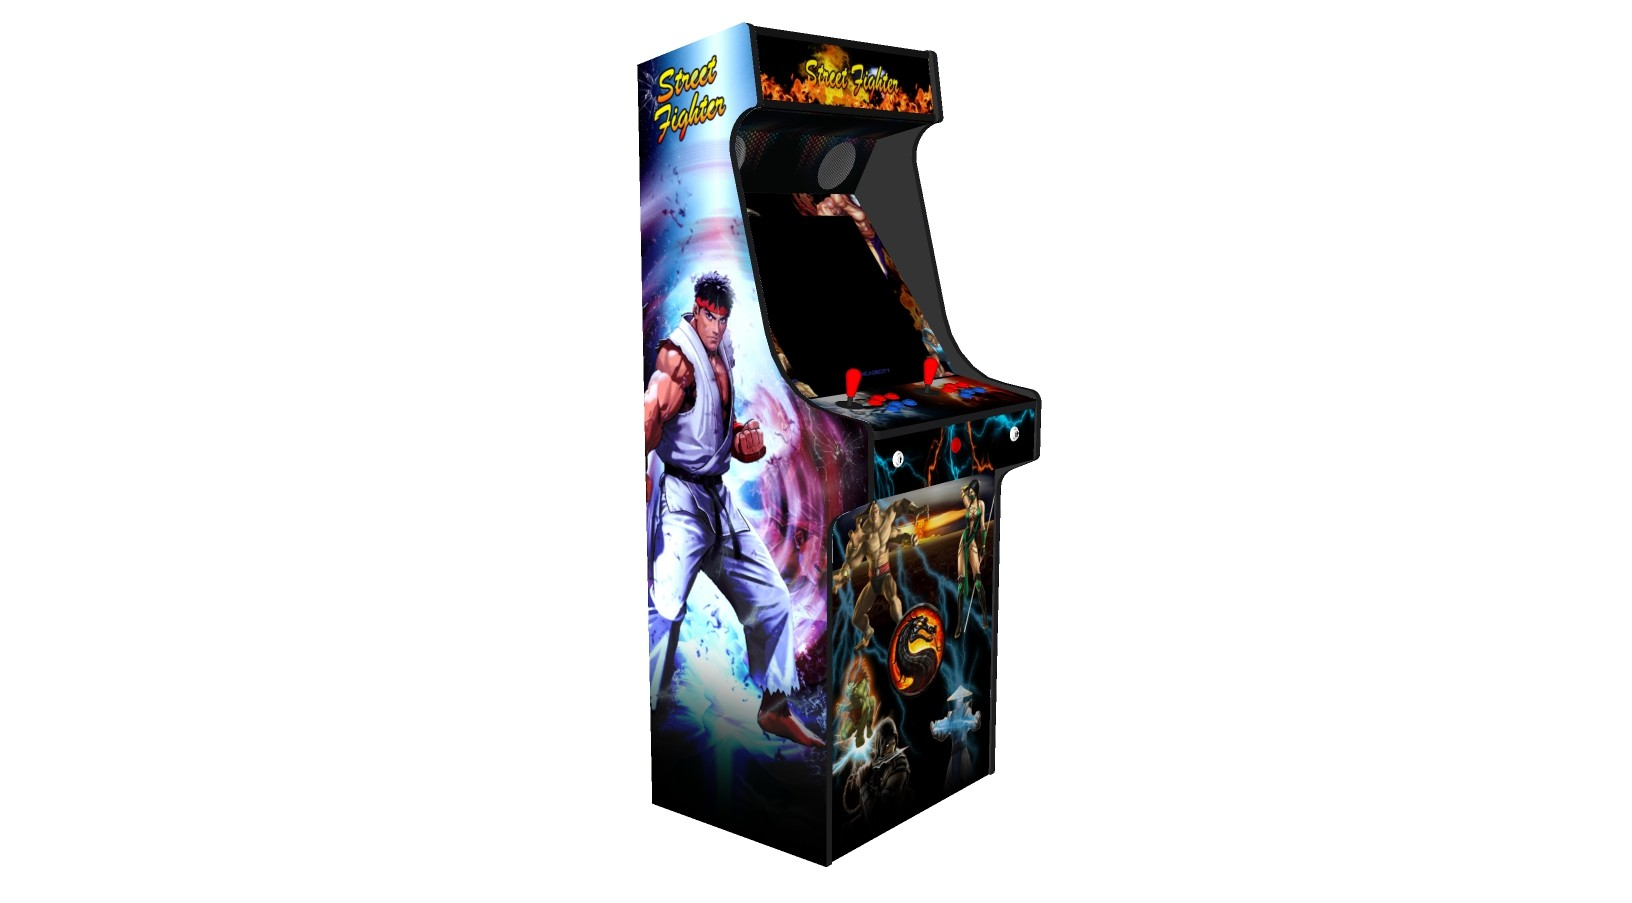 Classic Upright Arcade Machine - Street Fighter Theme v2 100w subwoofer 24 inch screen-left